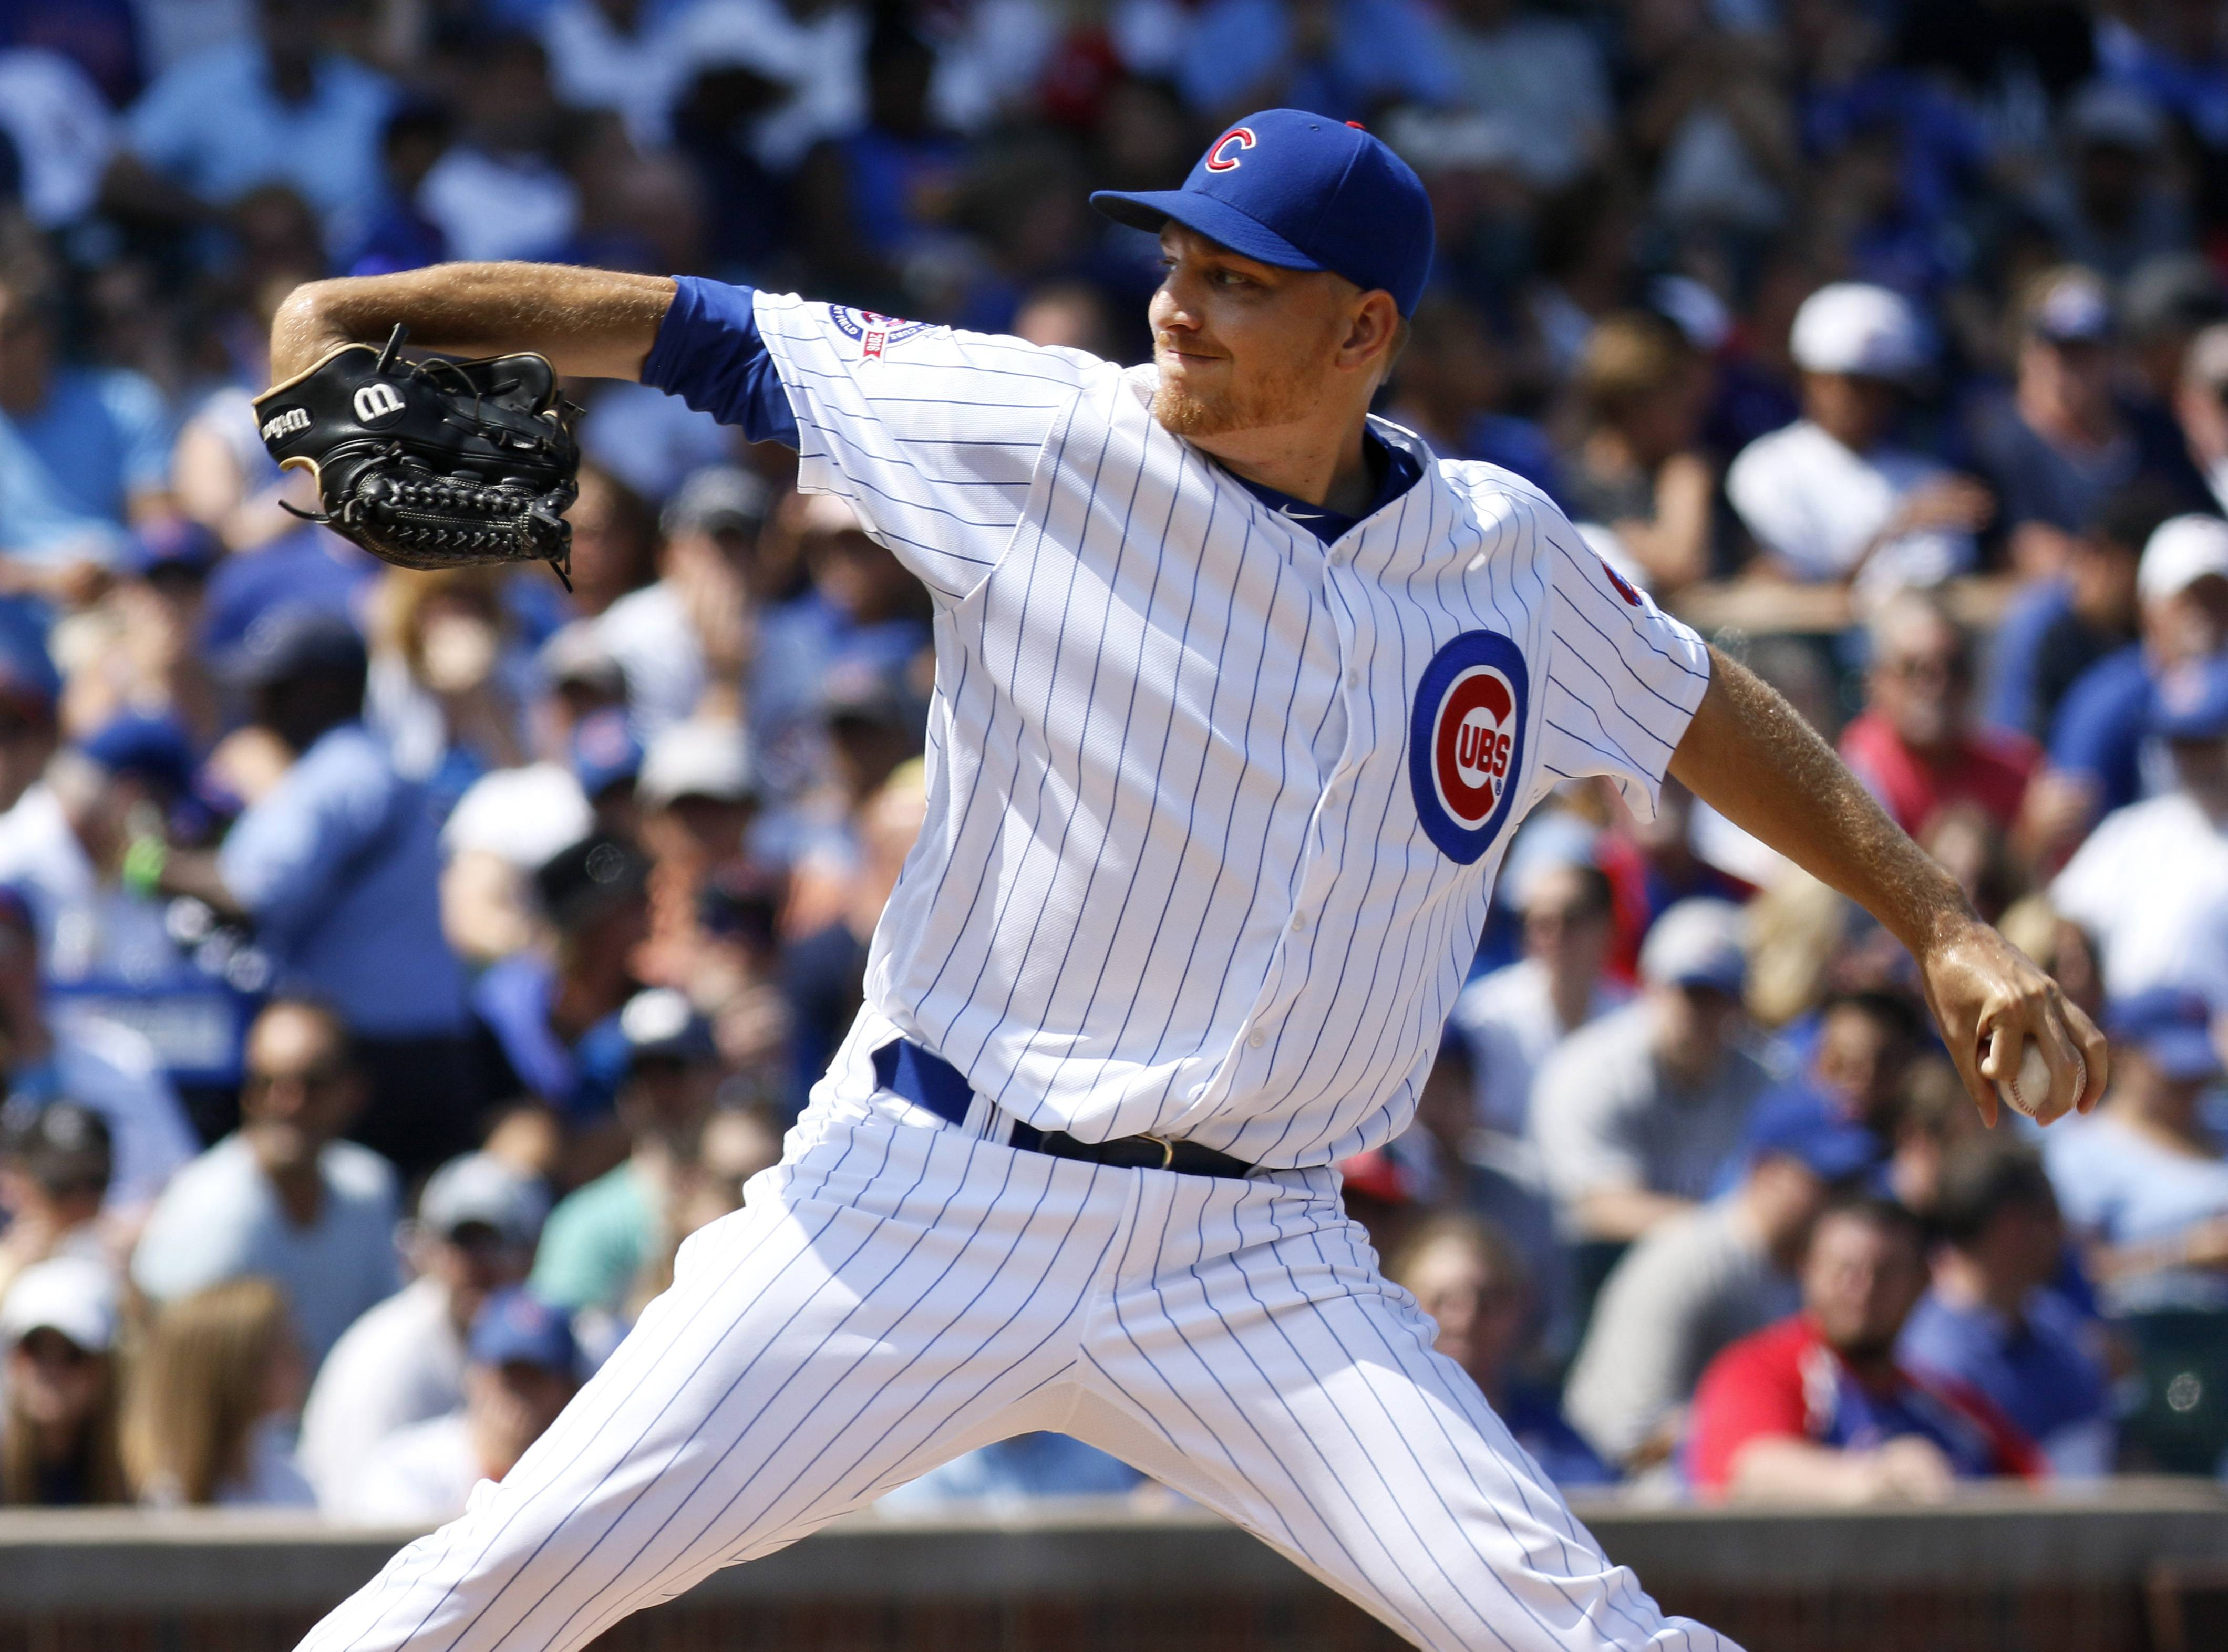 Chicago Cubs relief pitcher Mike Montgomery throws a pitch against the Milwaukee Brewers during the first game of a split doubleheader Tuesday, Aug 16, 2016, in Chicago.